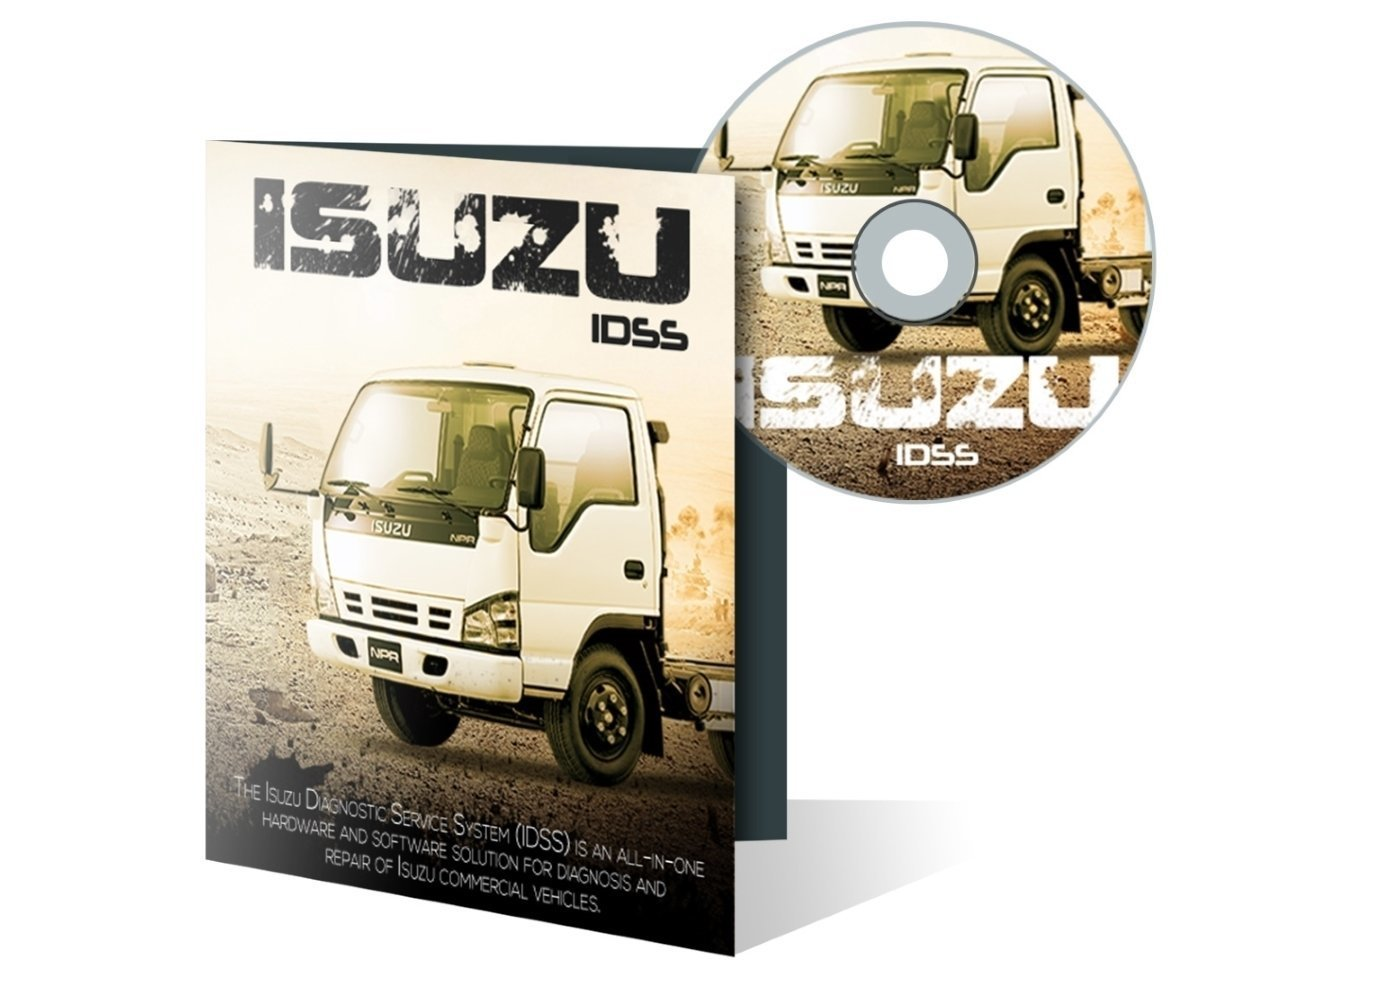 Isuzu IDSS Diagnostic Software 0027